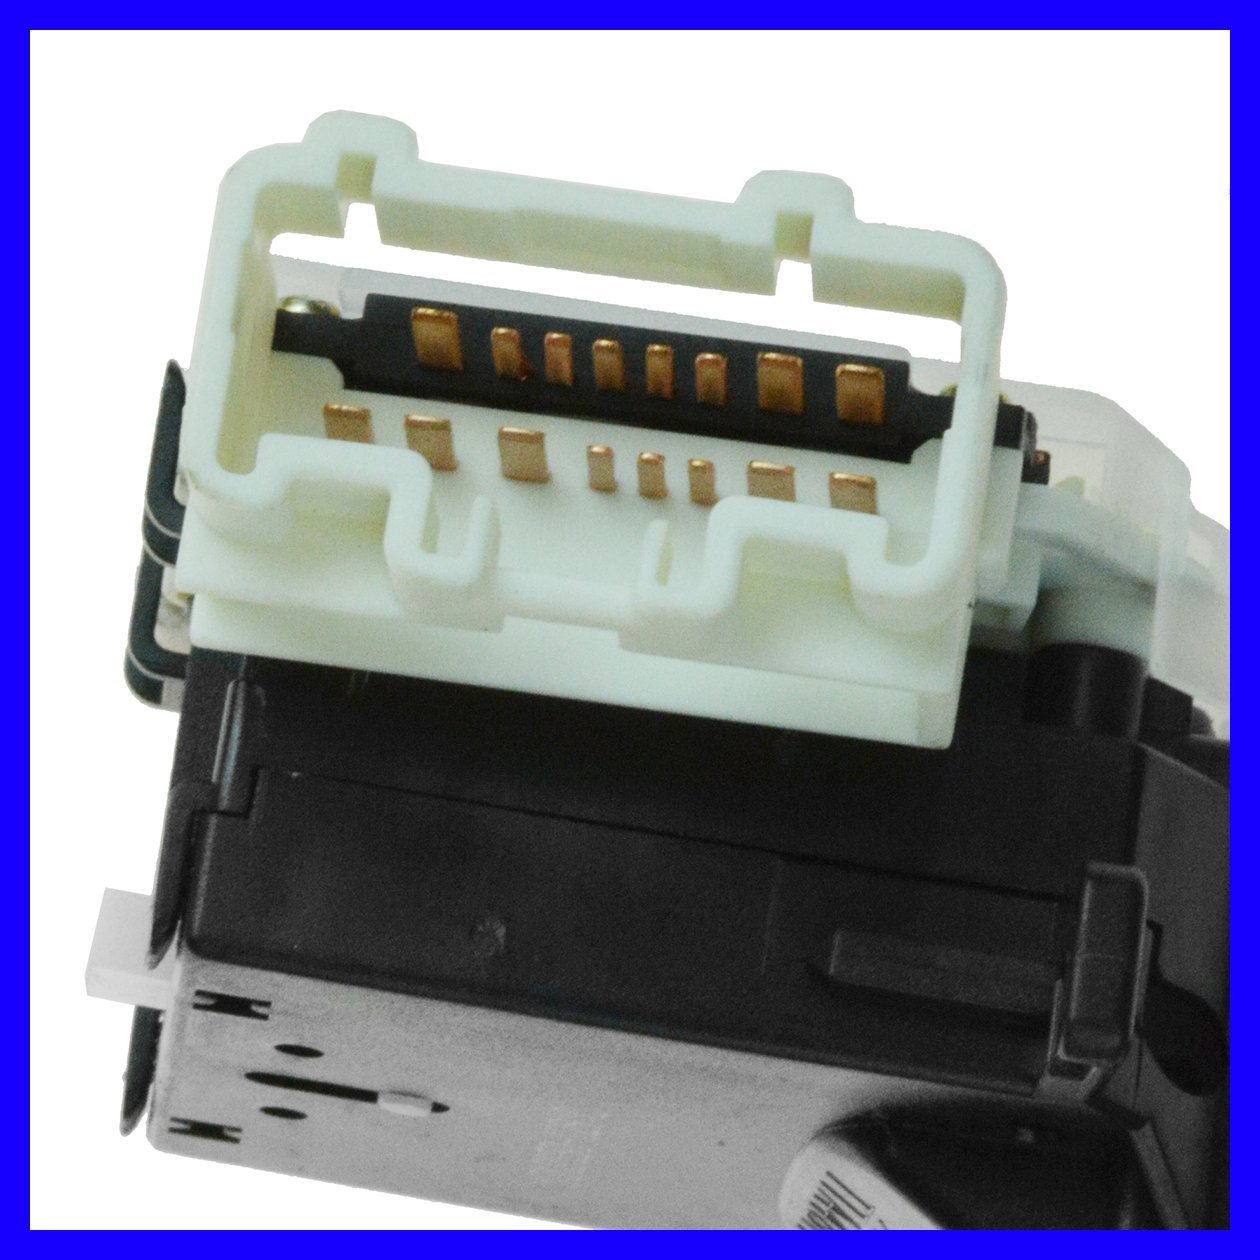 Turn Signal Headlight Dimmer Directional Switch Lever for Baja Forester Impreza